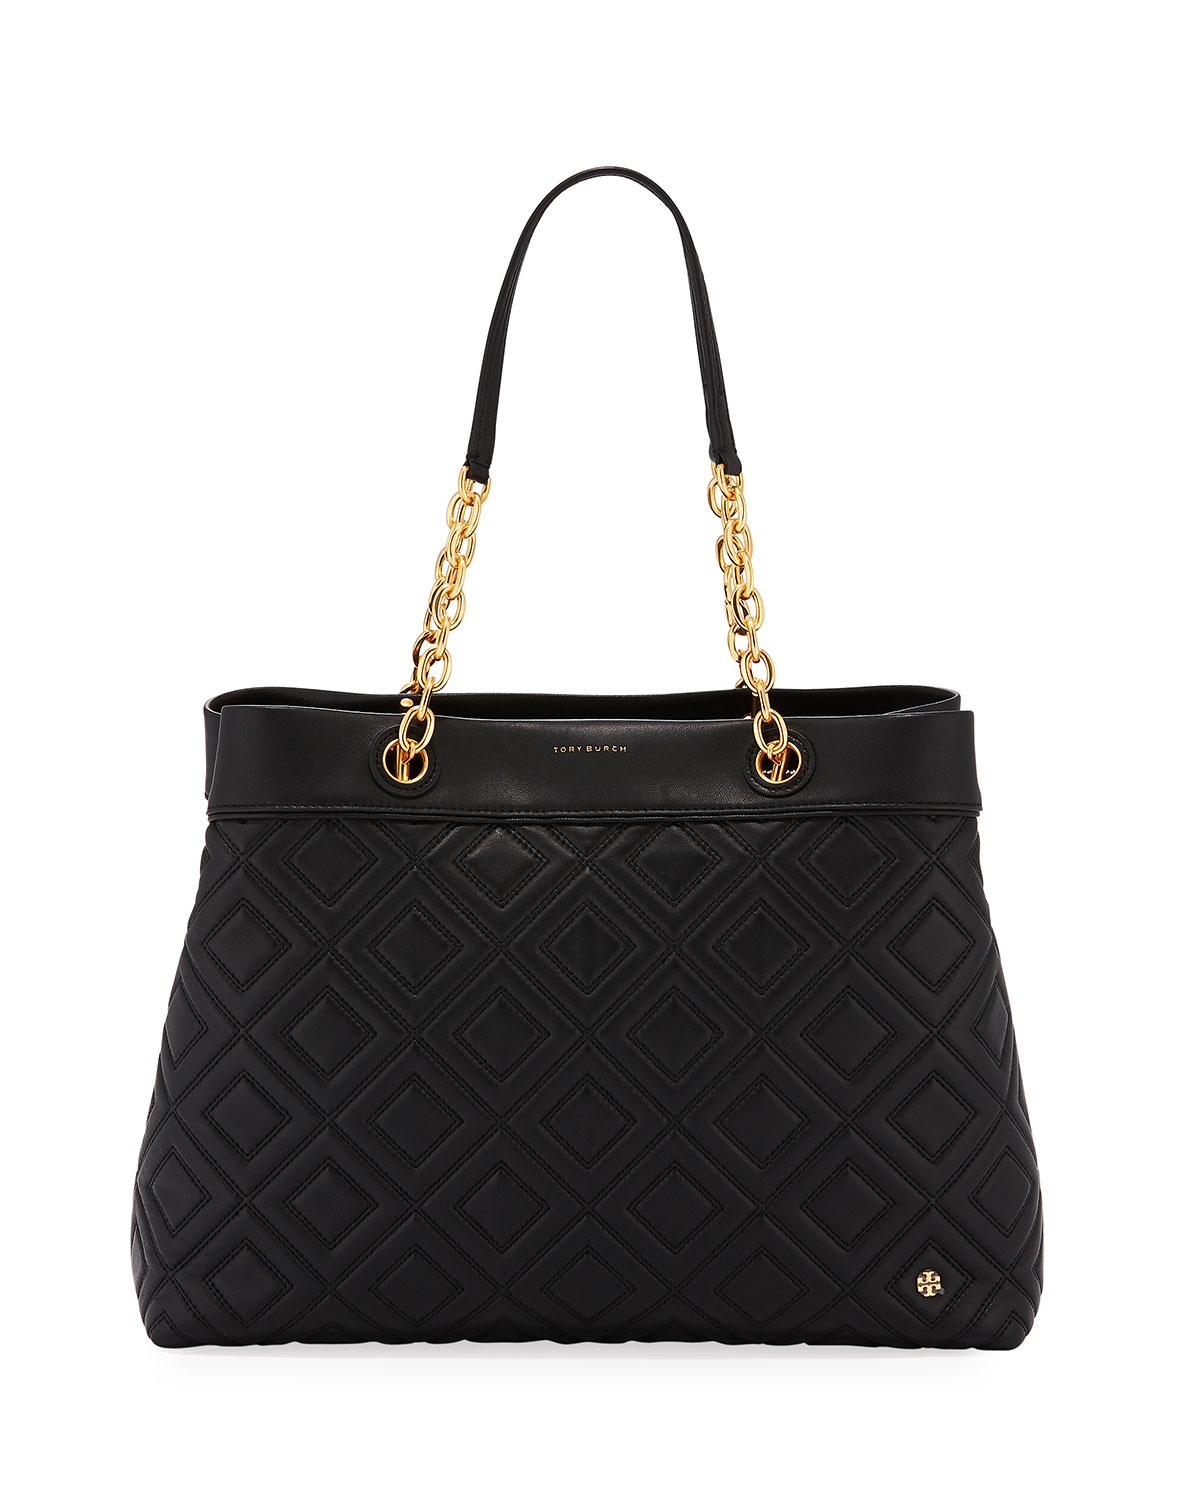 4b45f5b61897 Tory Burch Fleming Quilted Leather Tote Bag